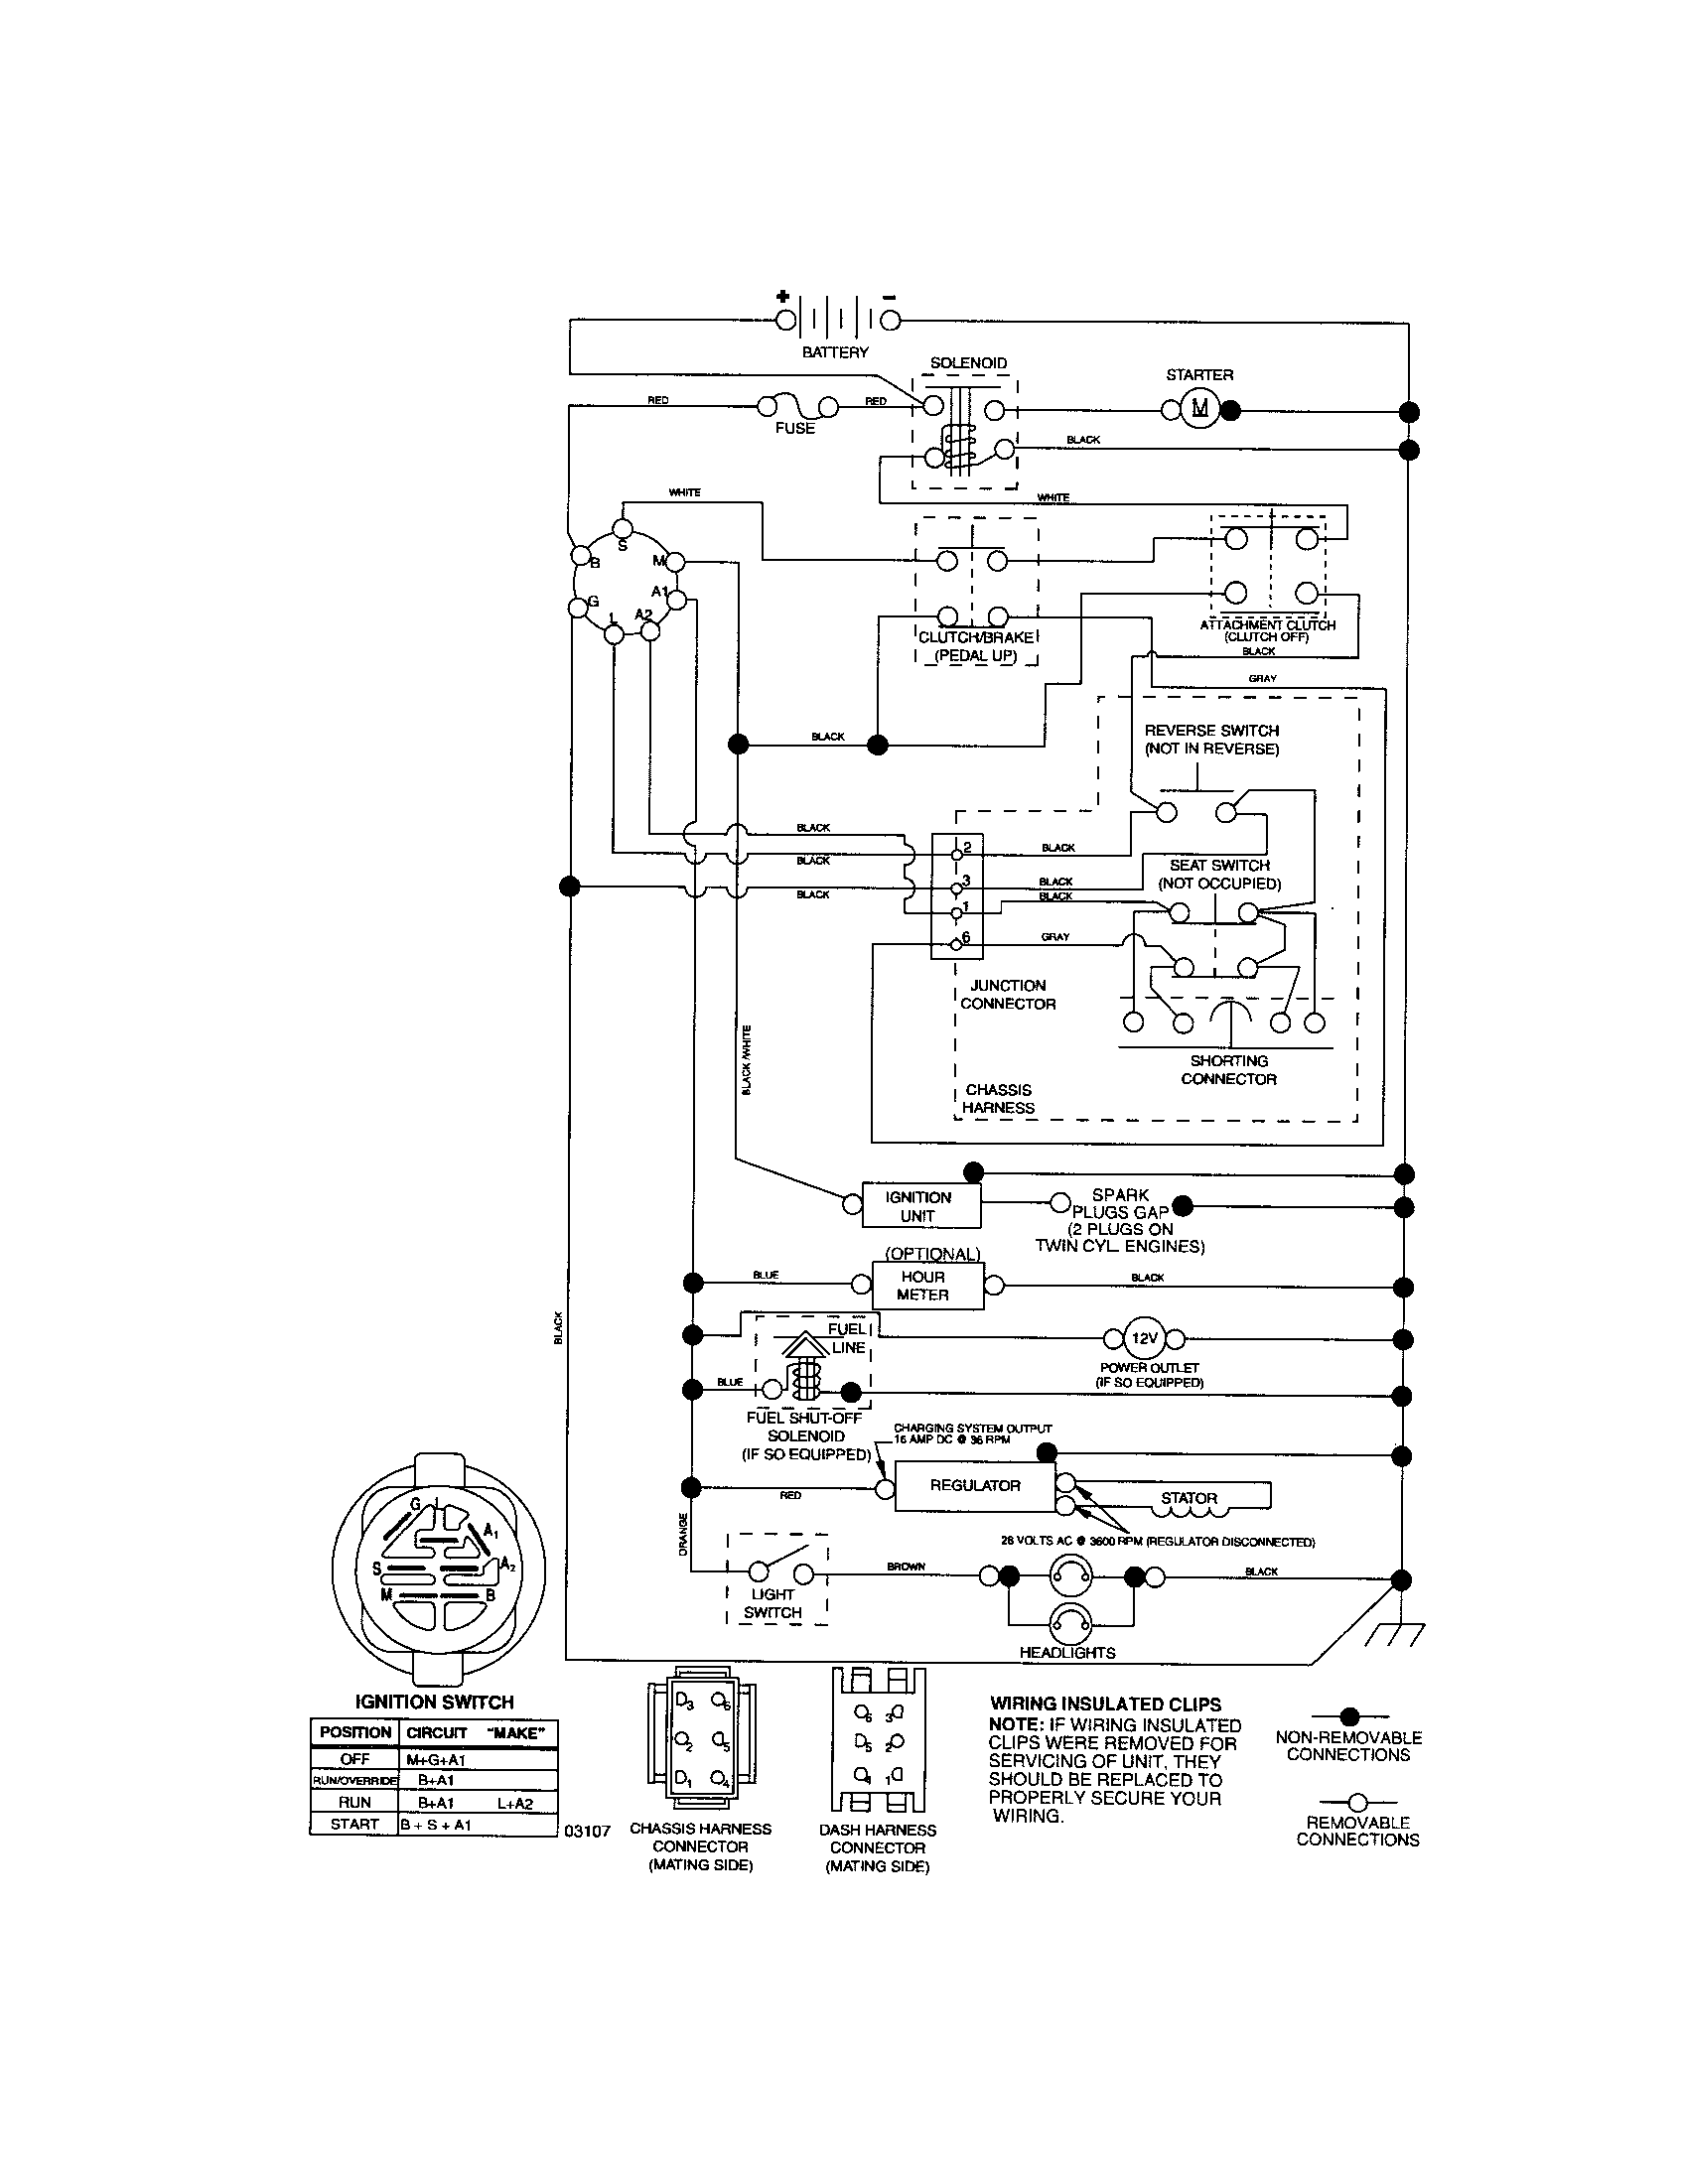 craftsman riding mower electrical diagram wiring diagram craftsman rh pinterest com sears riding mower wiring diagram craftsman riding mower wiring diagram